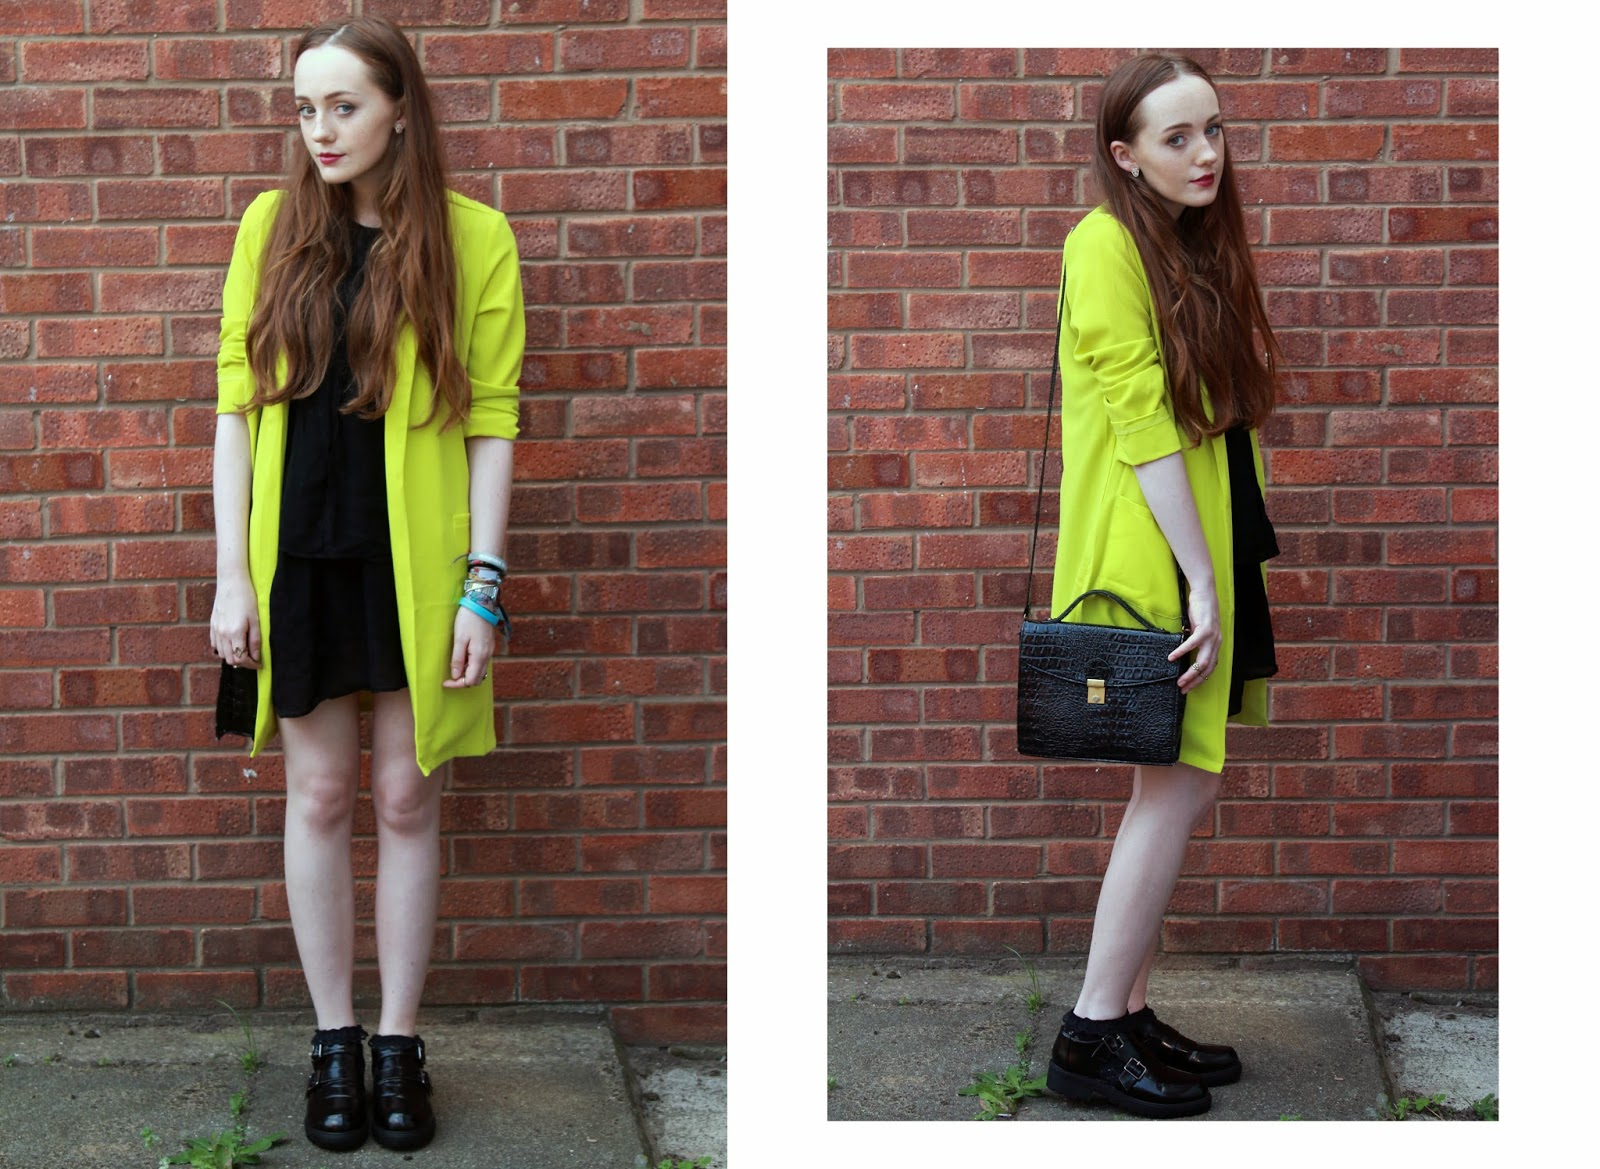 new look lime green duster jacket coat worn with zara black oversized dress, black primark bag and monk shoes september 2014